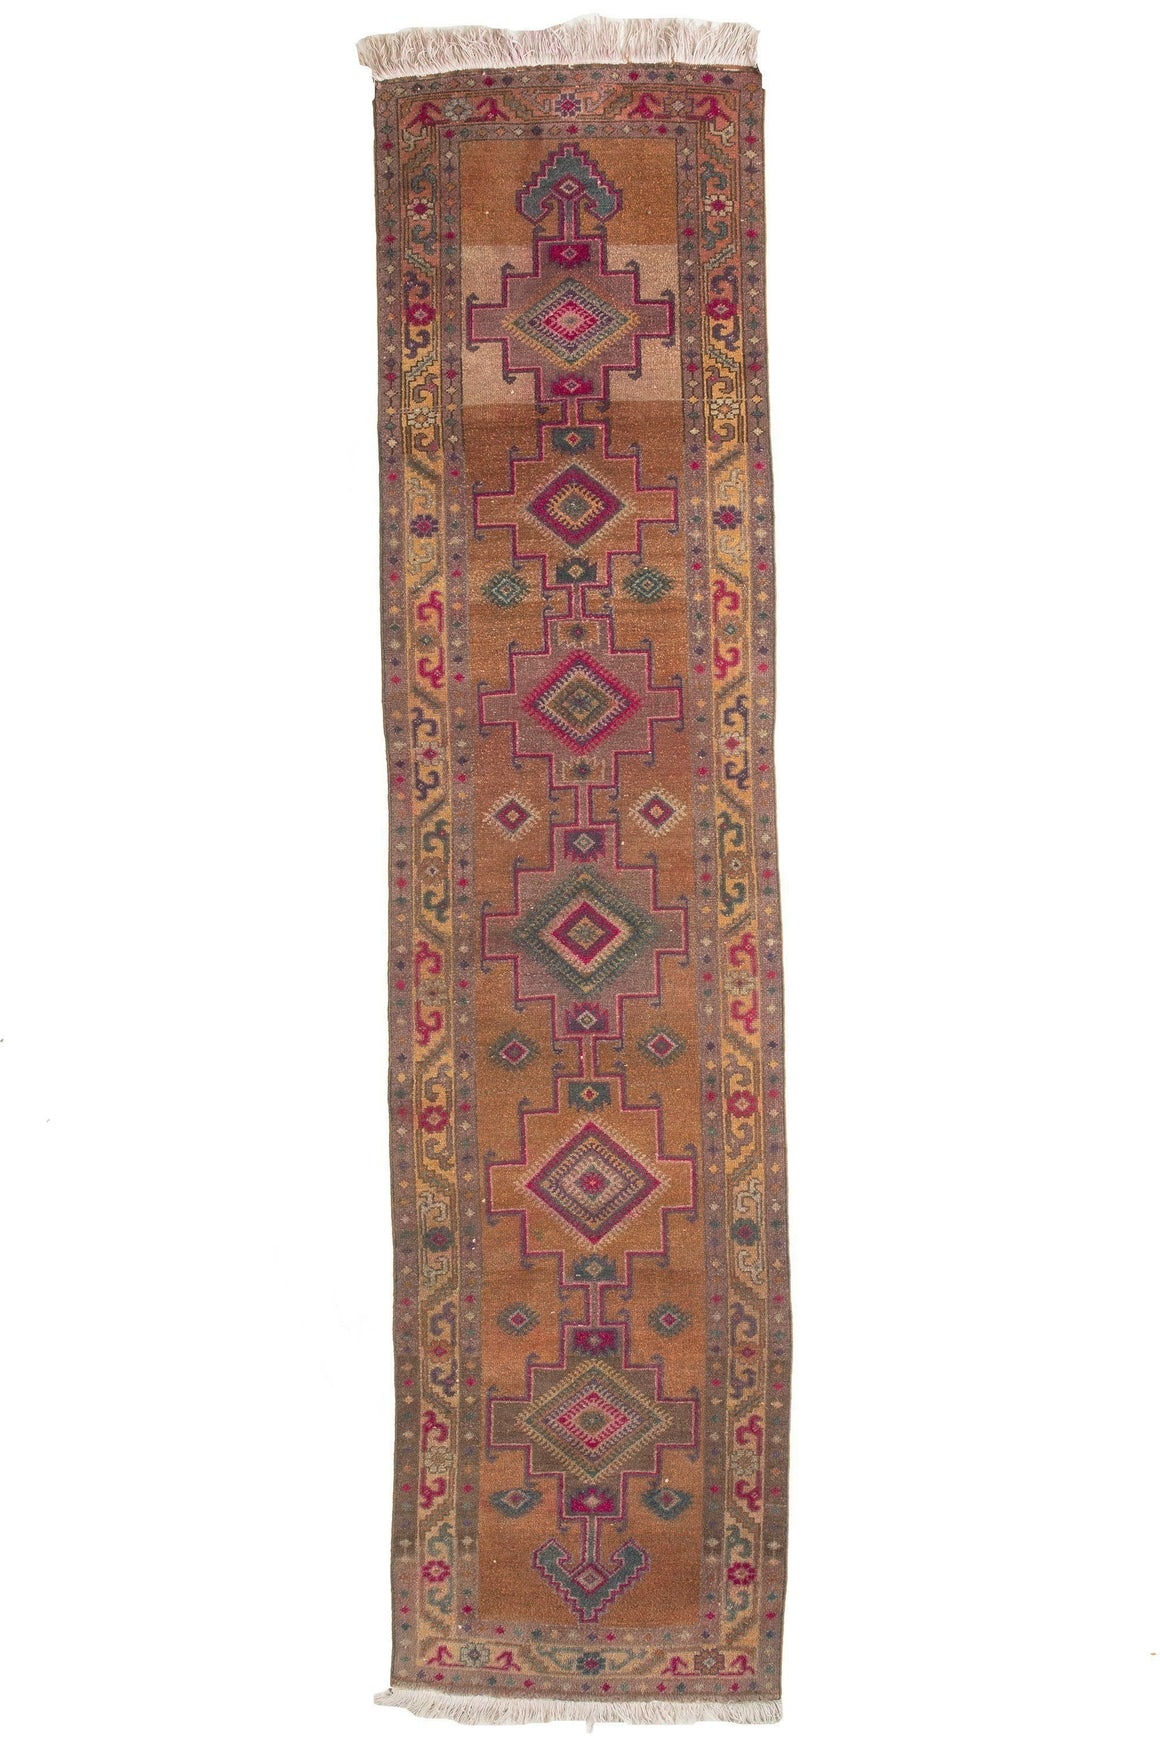 'Alchemy' Turkish Vintage Long Runner - 3'3'' x 14'1'' - Canary Lane - Curated Textiles